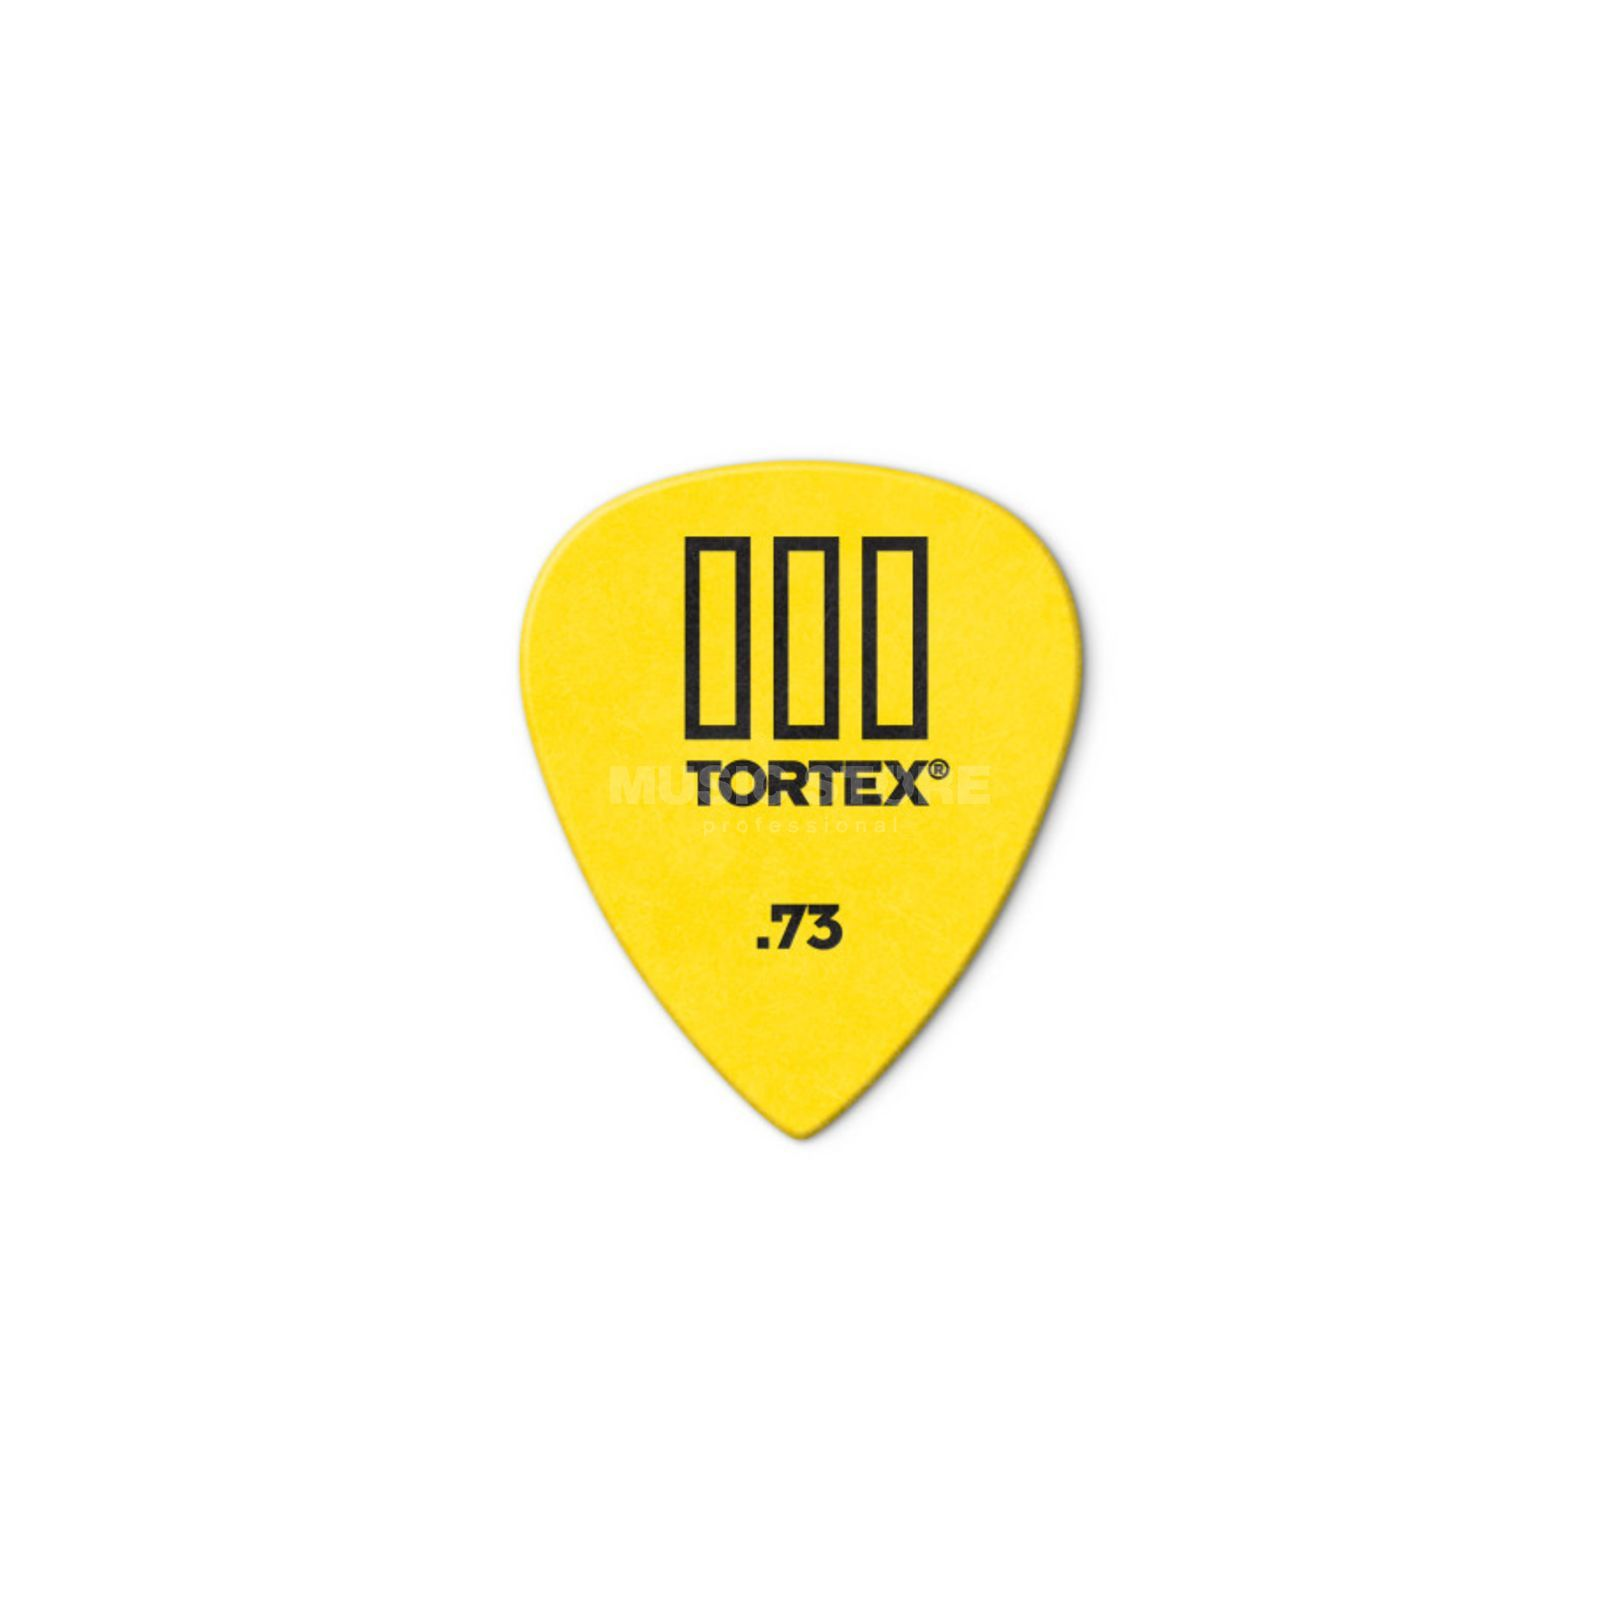 Dunlop Tortex III 462 Picks 0,73 72-Pack Produktbillede